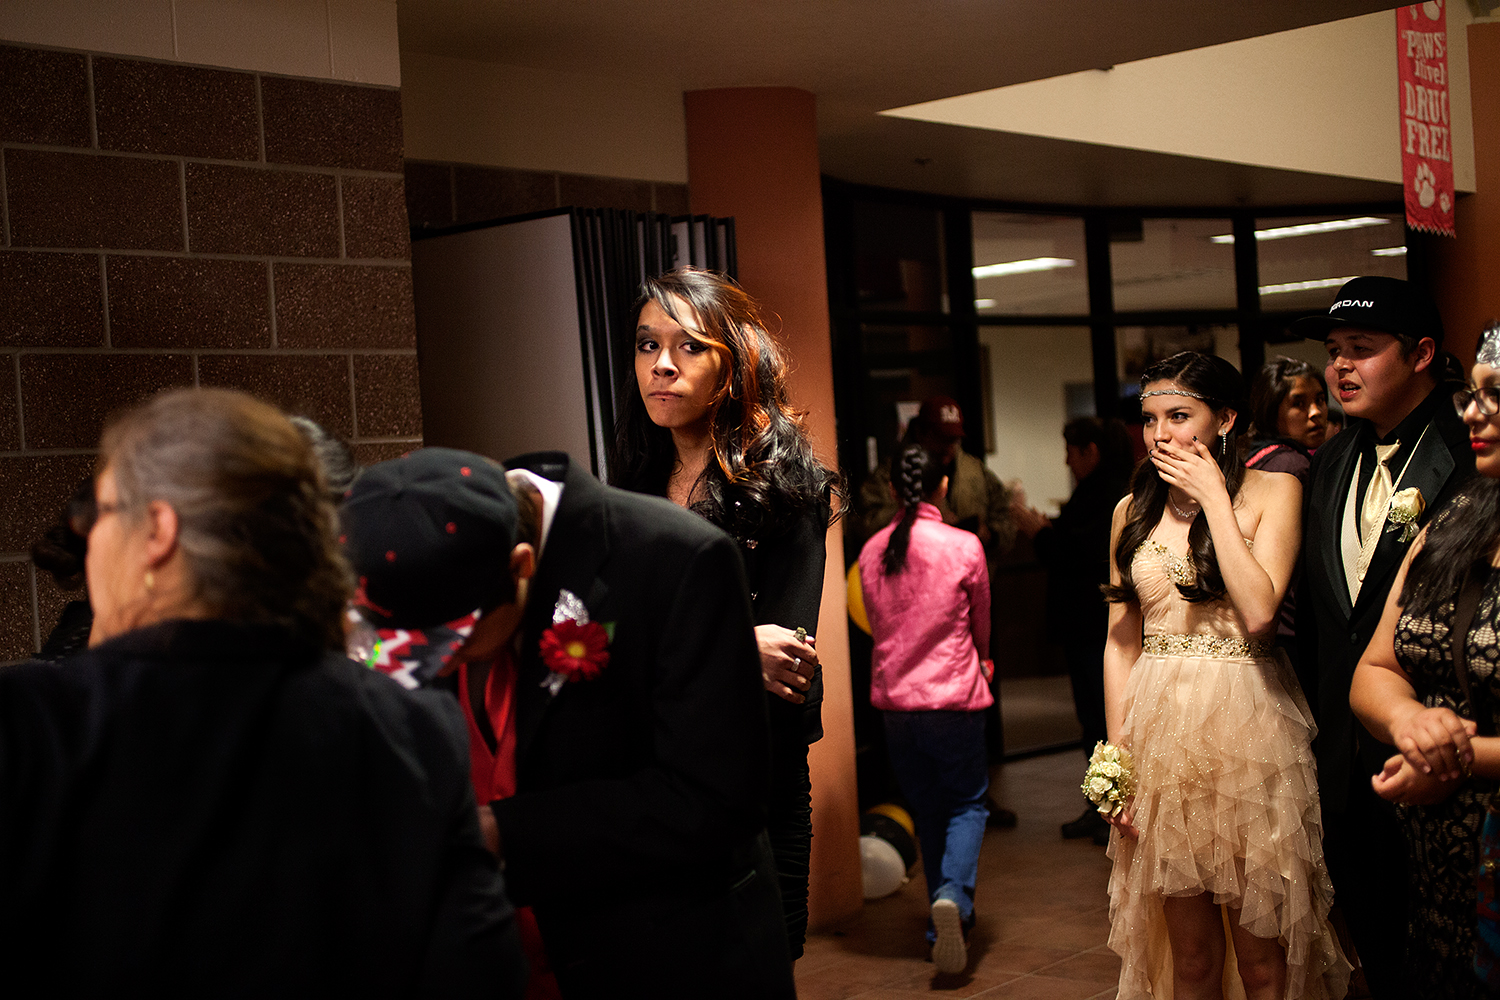 Dale waits in line with her peers to enter the prom.